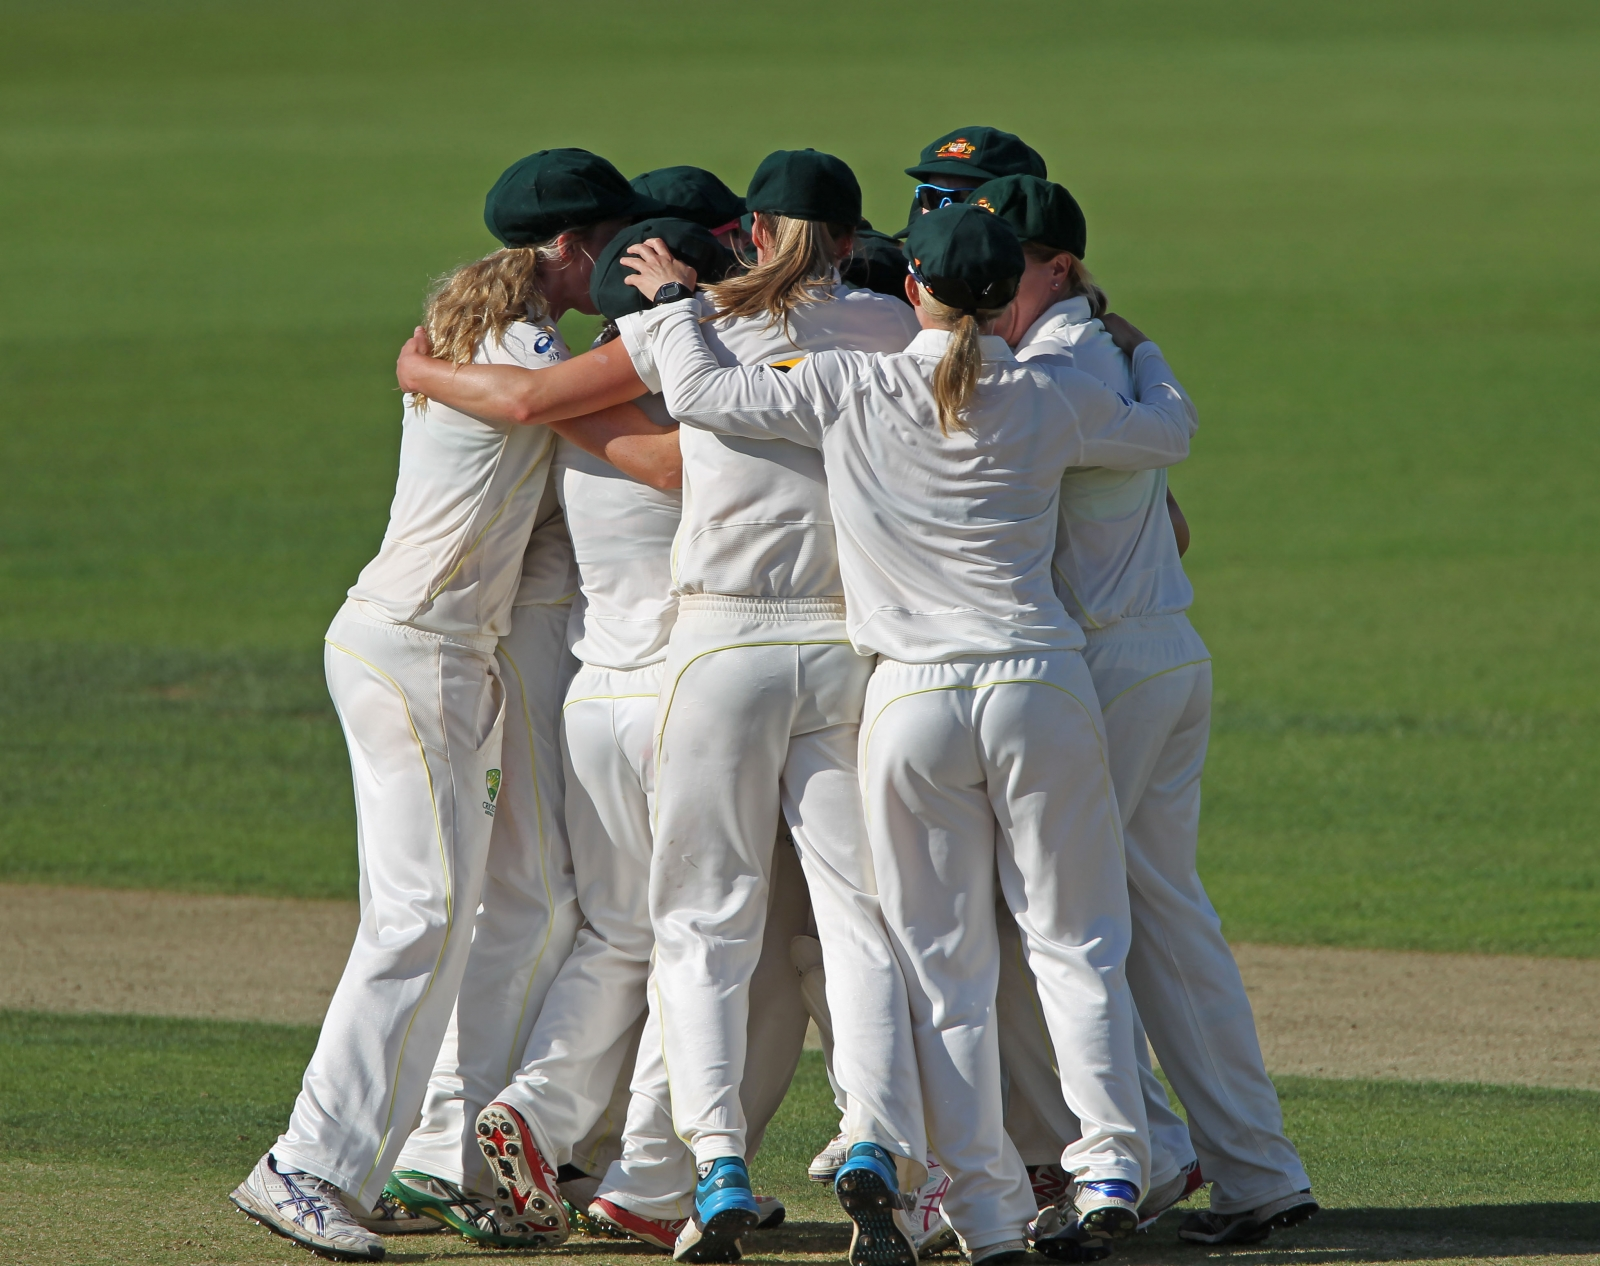 Australia women's cricket team